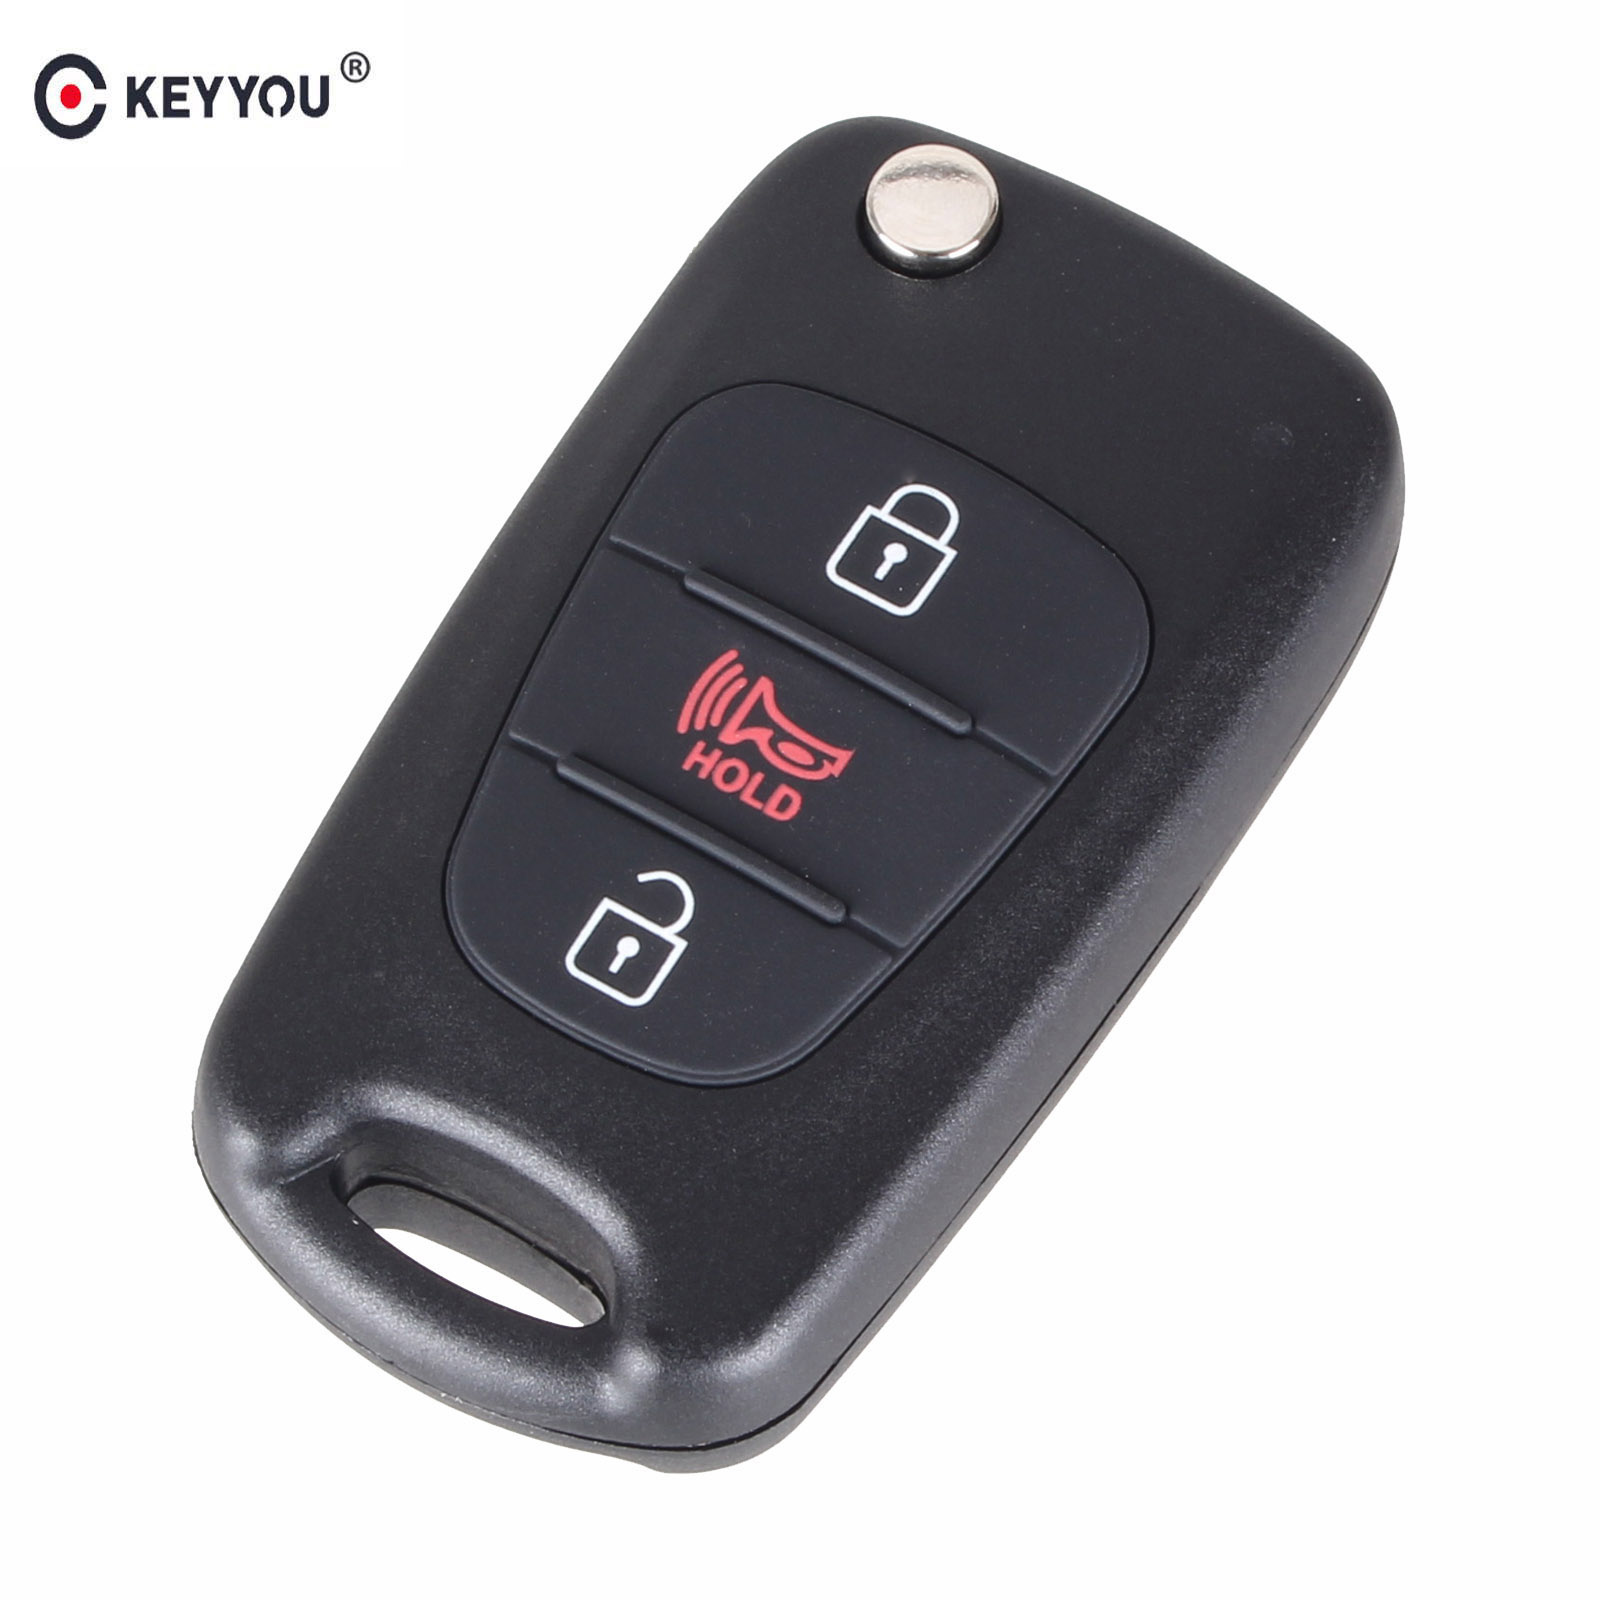 KEYYOU New 3 Buttons Flip Folding Remote Key Shell For HYUNDAI KIA SOUL Car Keys Blank Case Cover maizhi 3 button flip folding car key shell for hyundai avante i30 ix35 kia k2 k5 sorento sportage key cover case styling